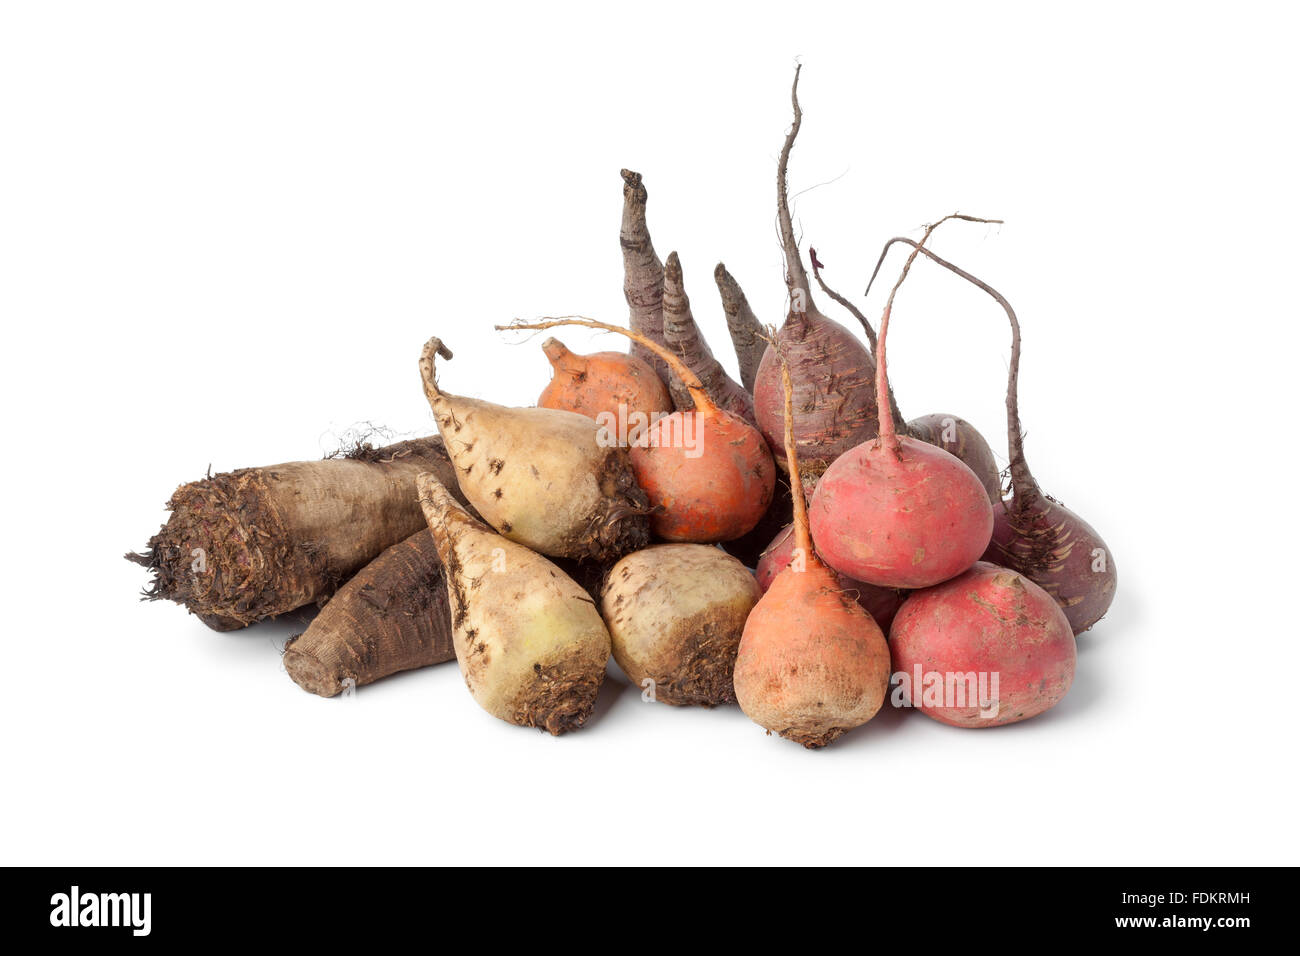 Variety of  multi colored beets on white background - Stock Image